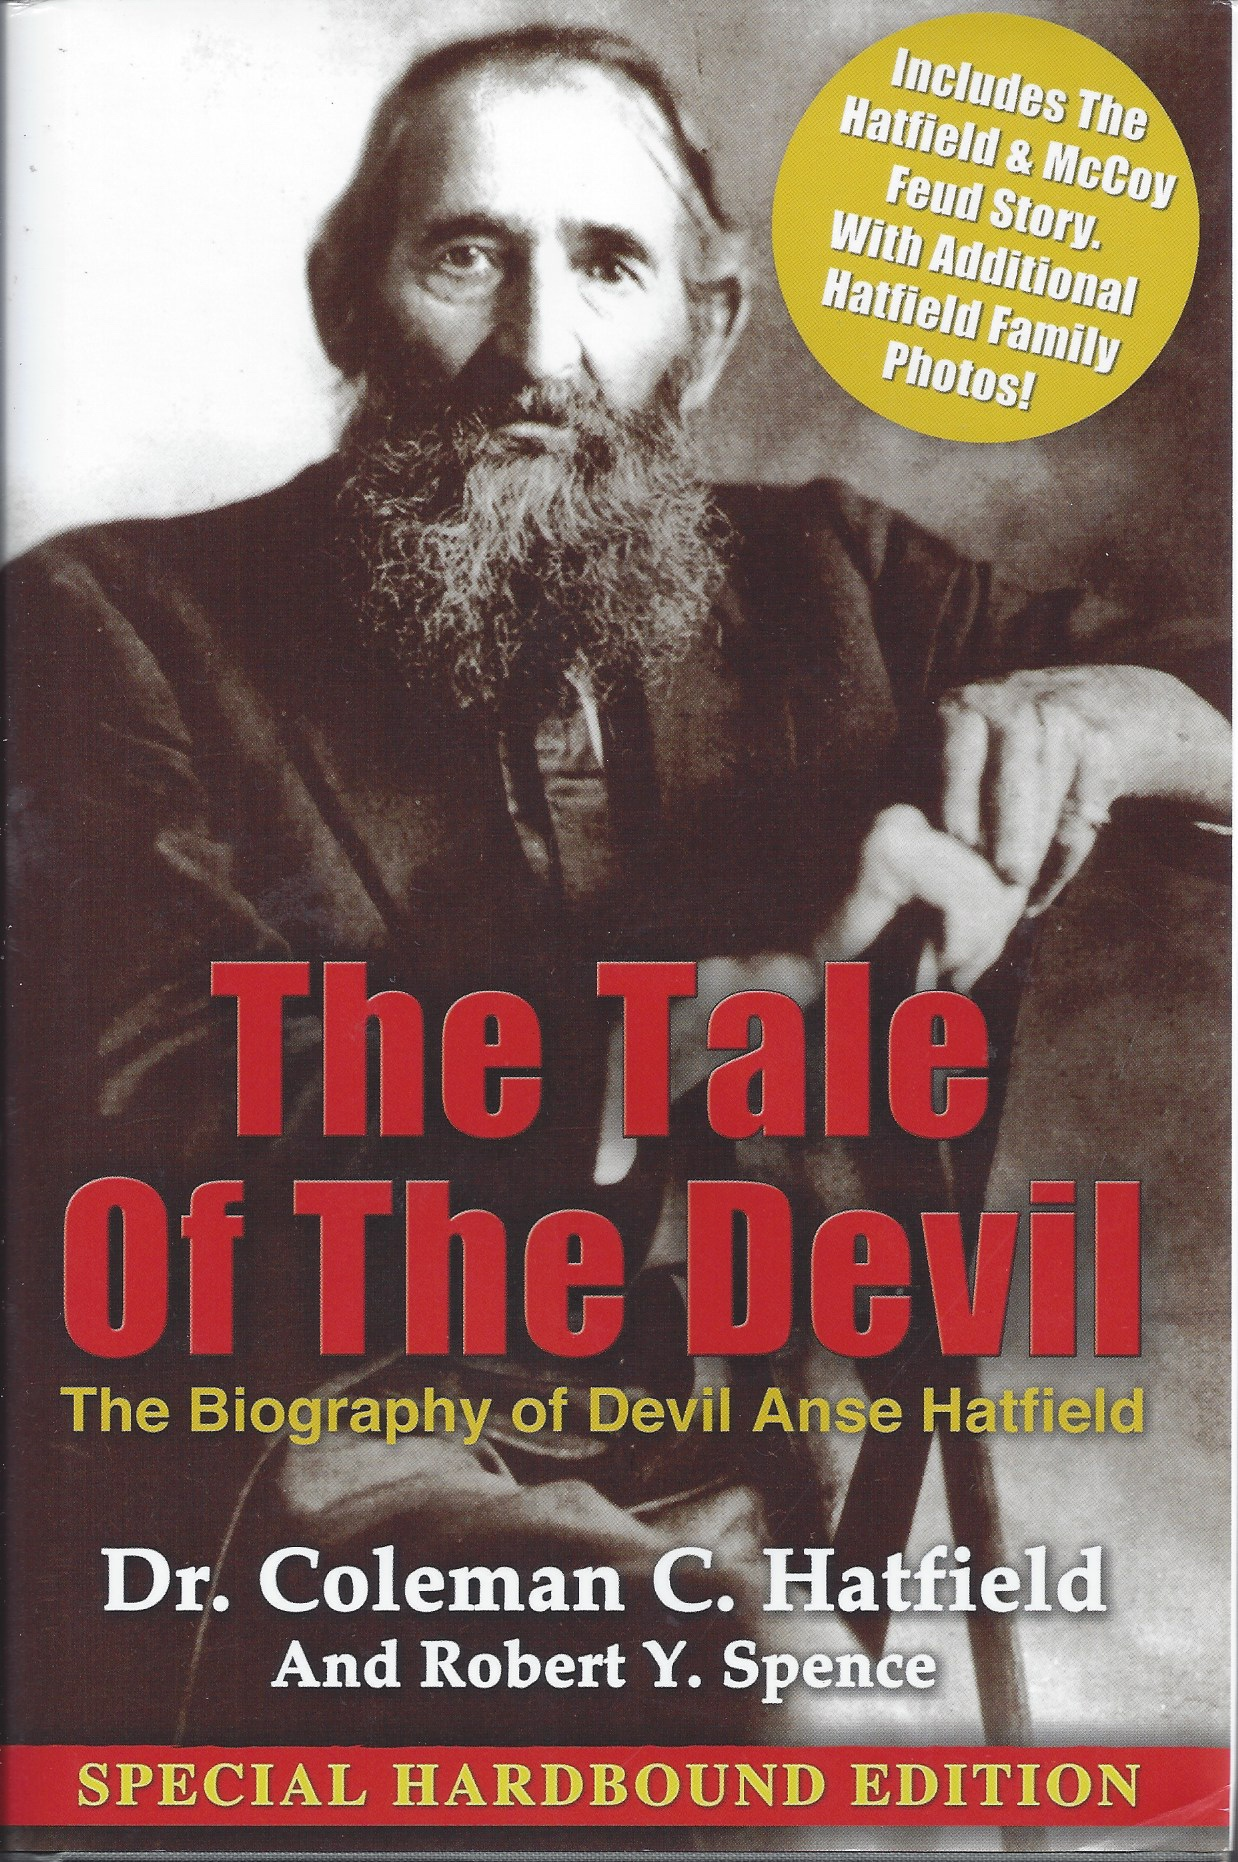 Image for The Tale of the Devil The Biography of Devil Anse Hatfield